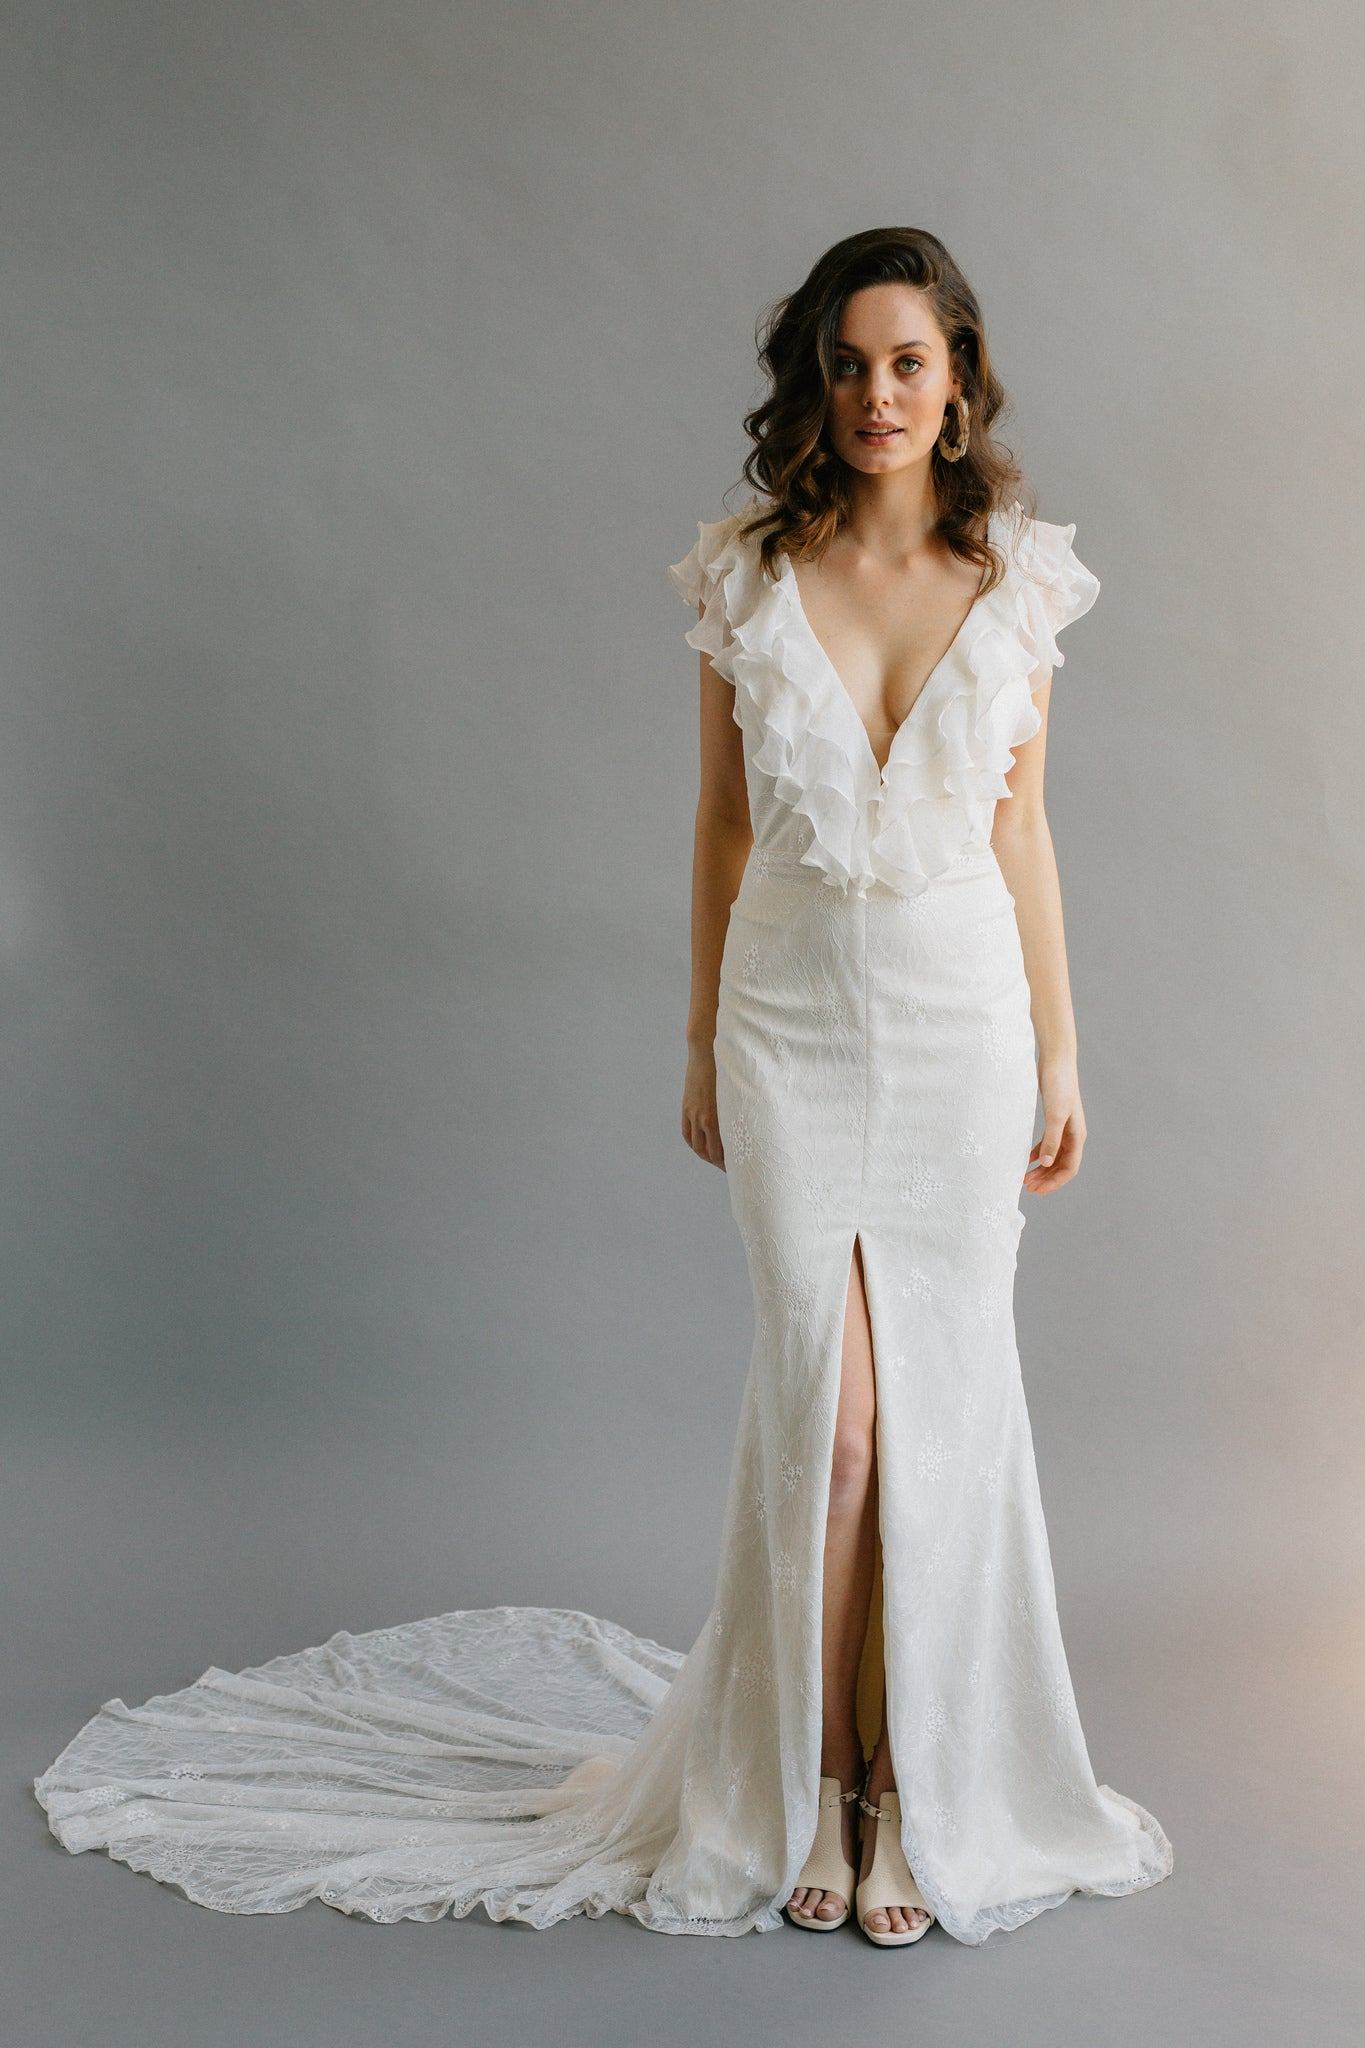 Lightweight mermaid wedding dress with ruffles, a long train, and a slit